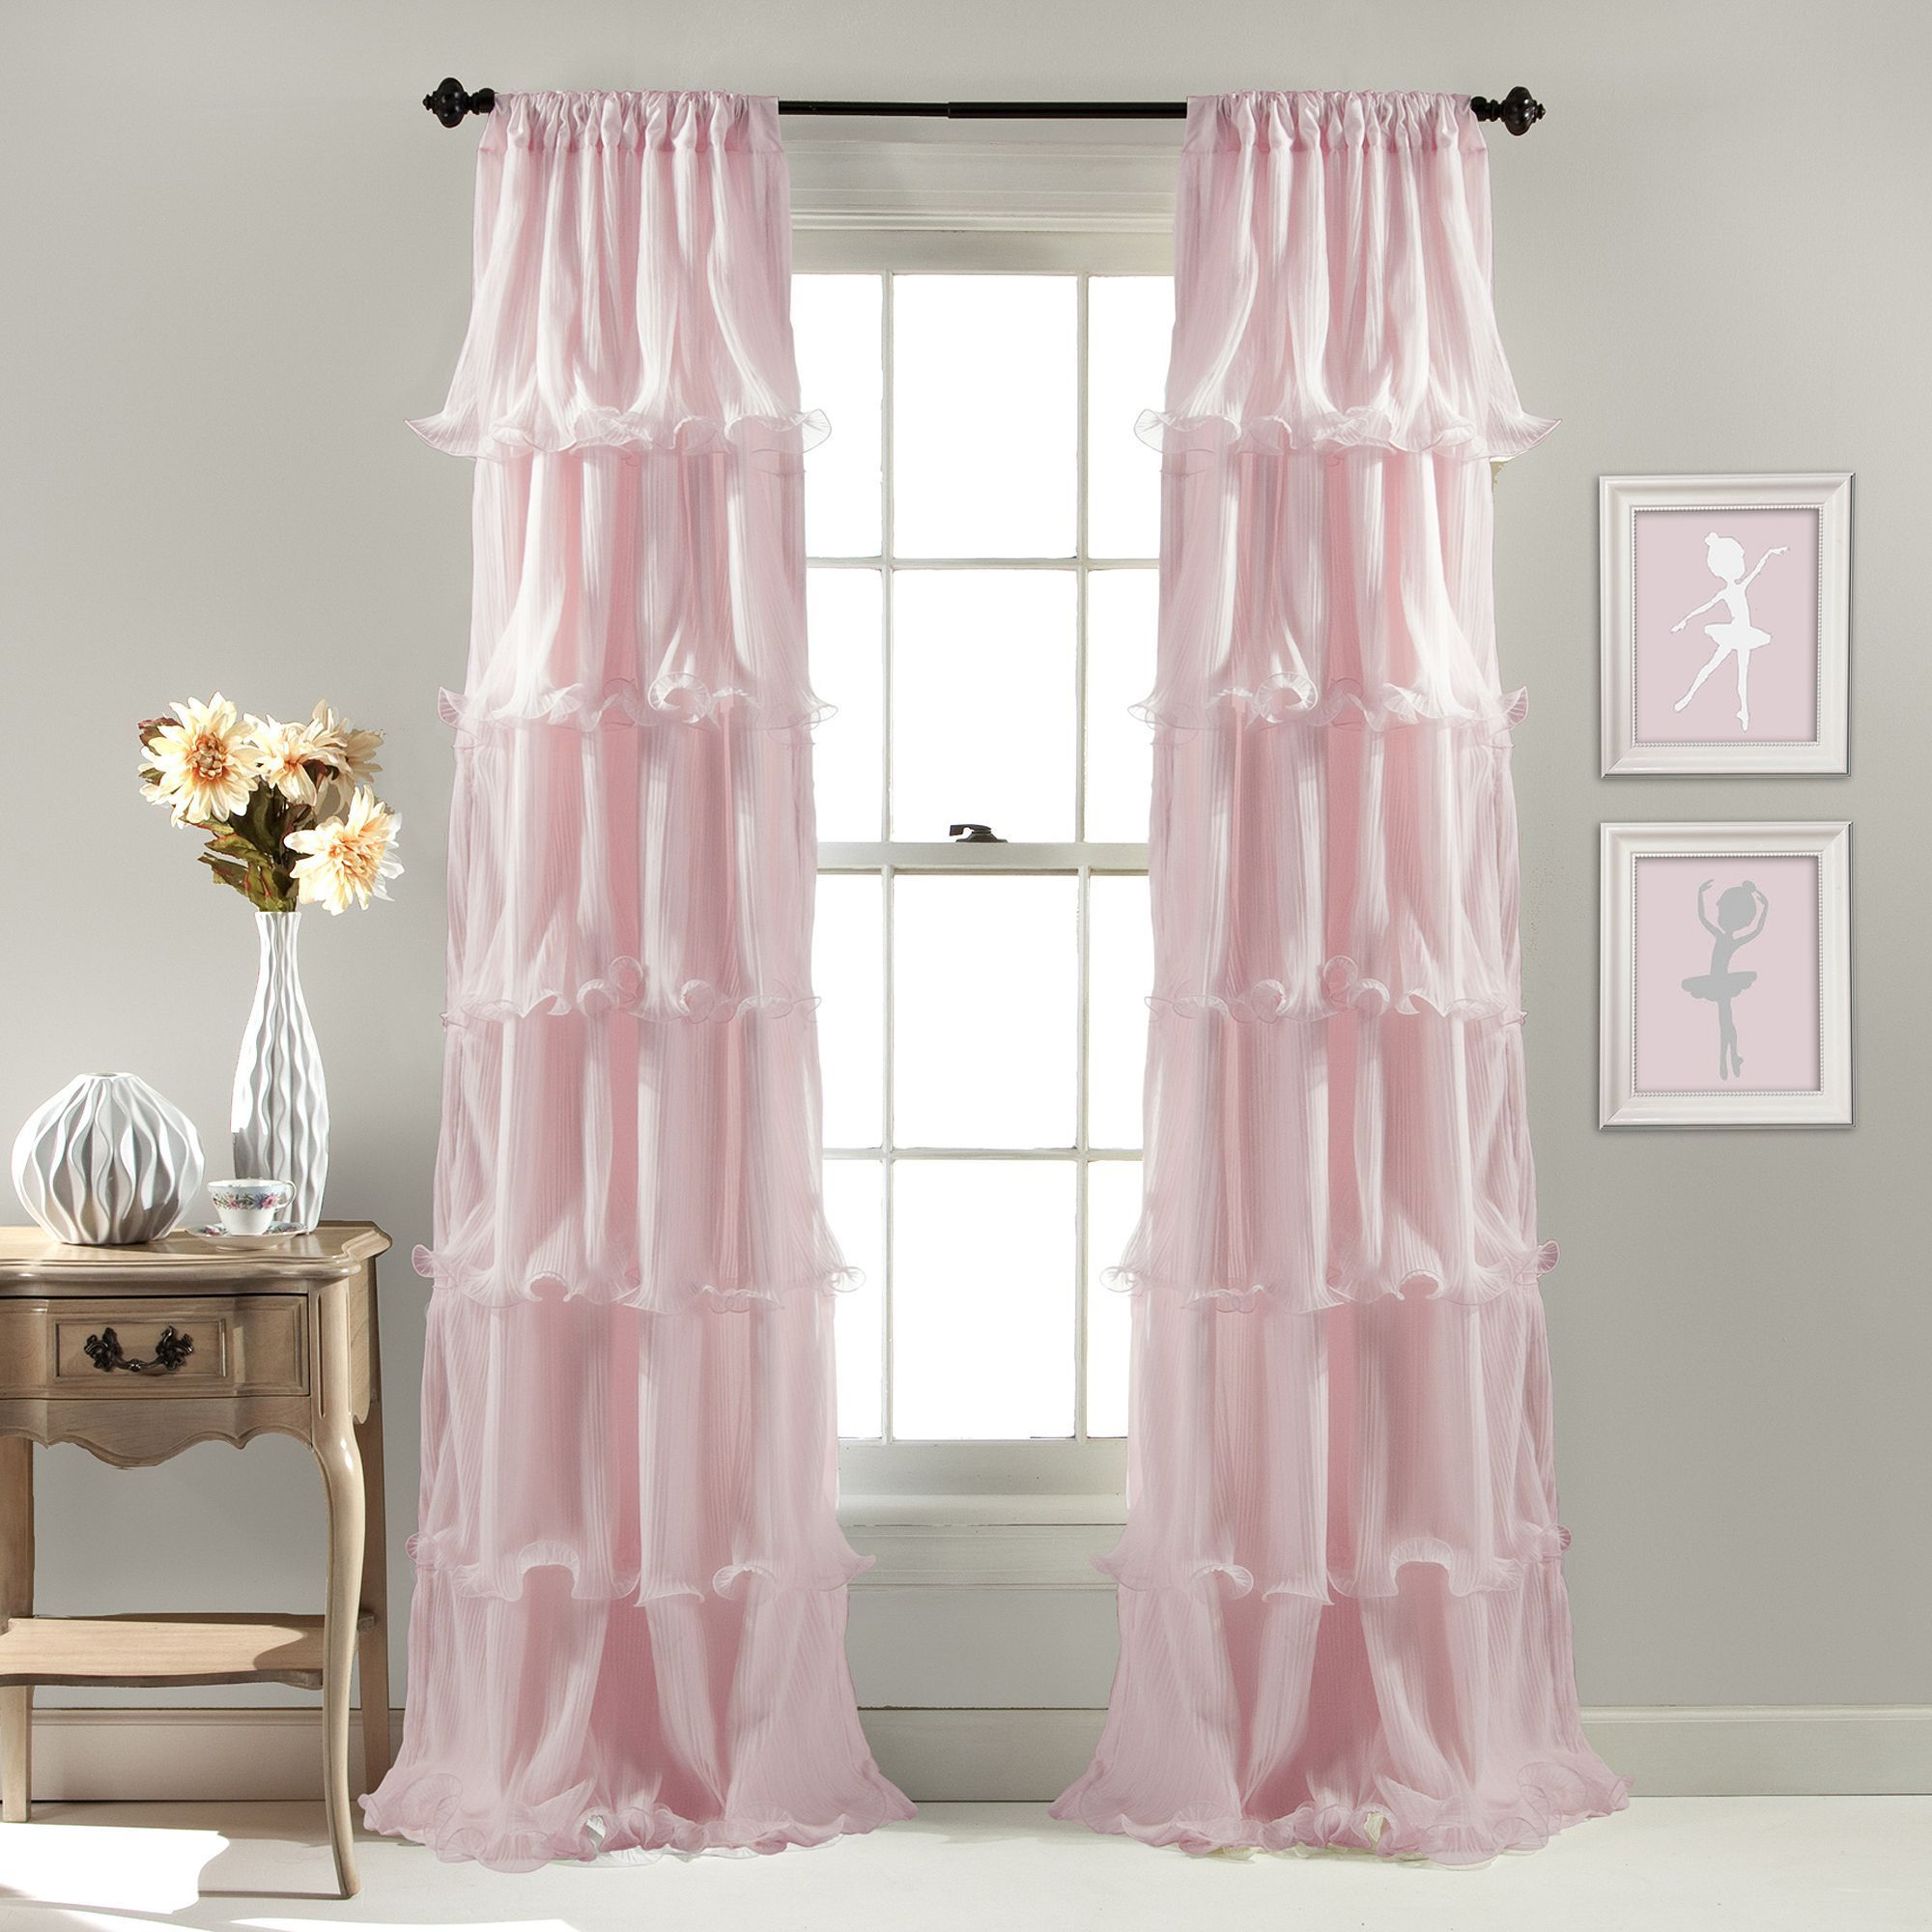 Lush Decor 1 Panel Nerina Sheer Window Curtain 54 X 84